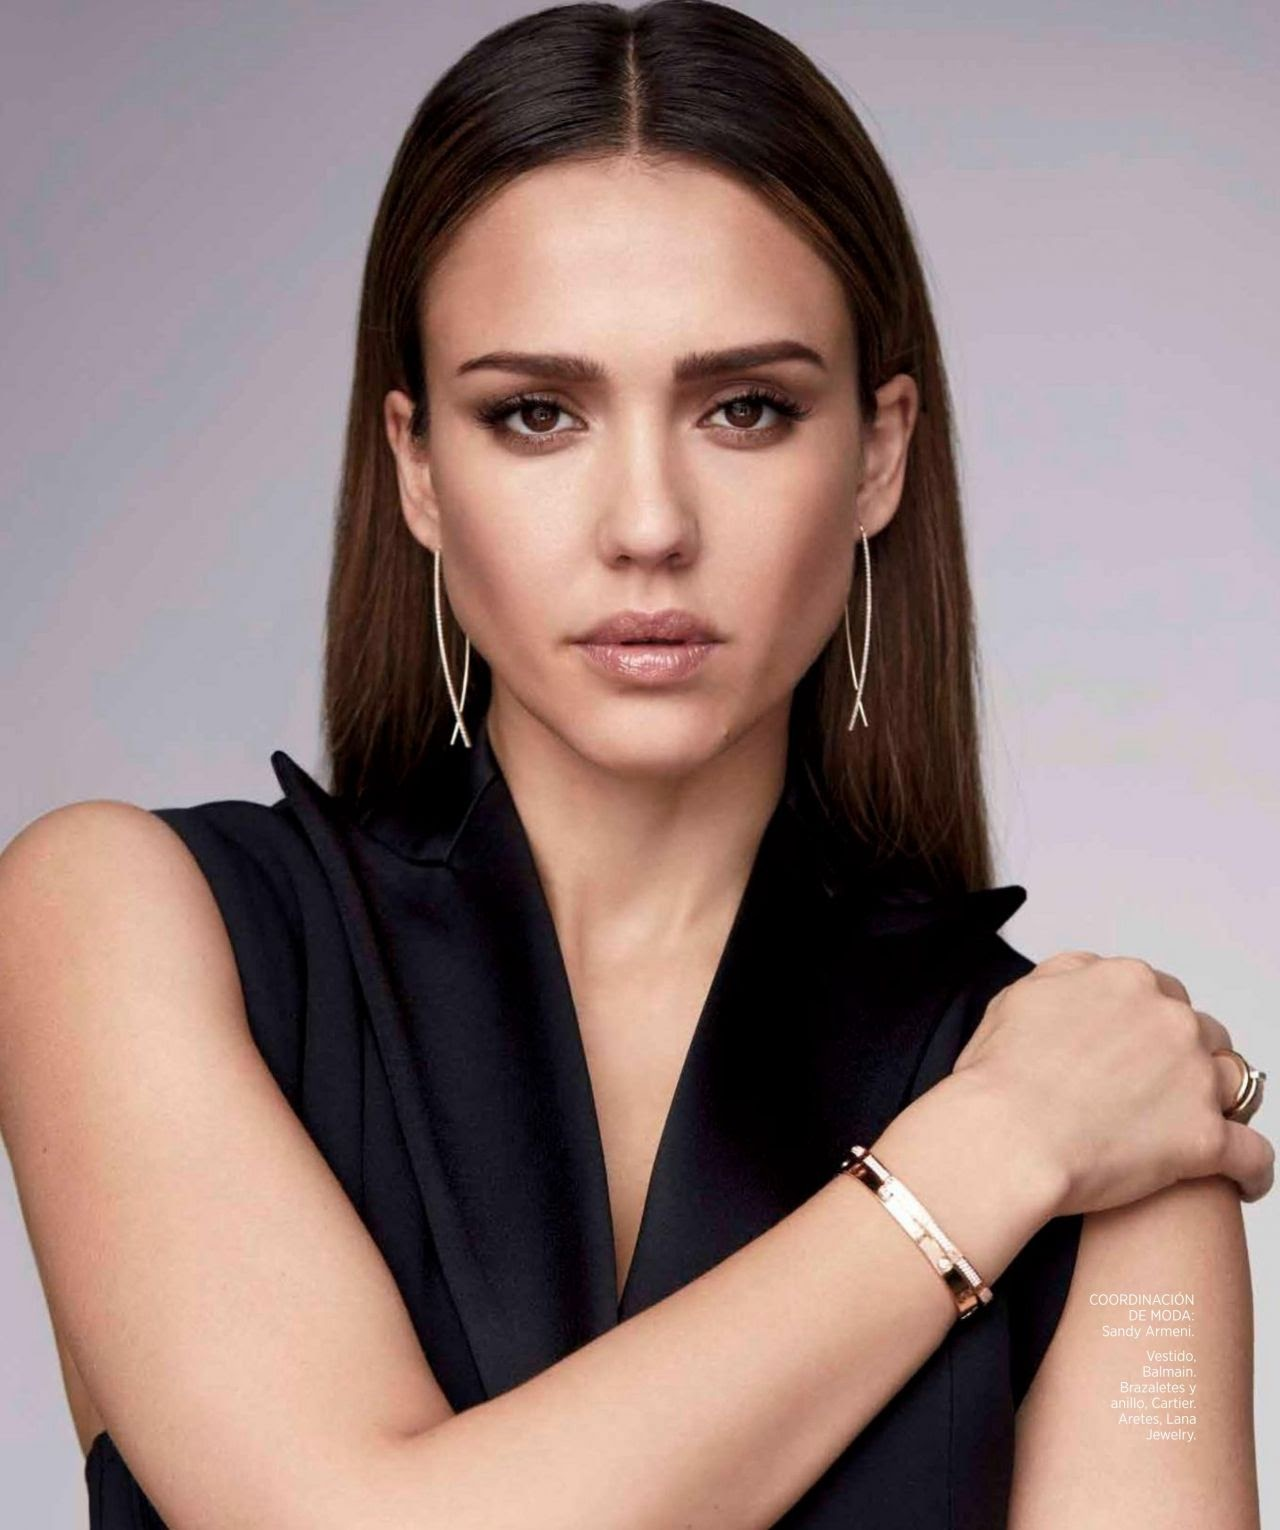 Jessica Alba appeared in the Mexican version of Harper's Bazaar